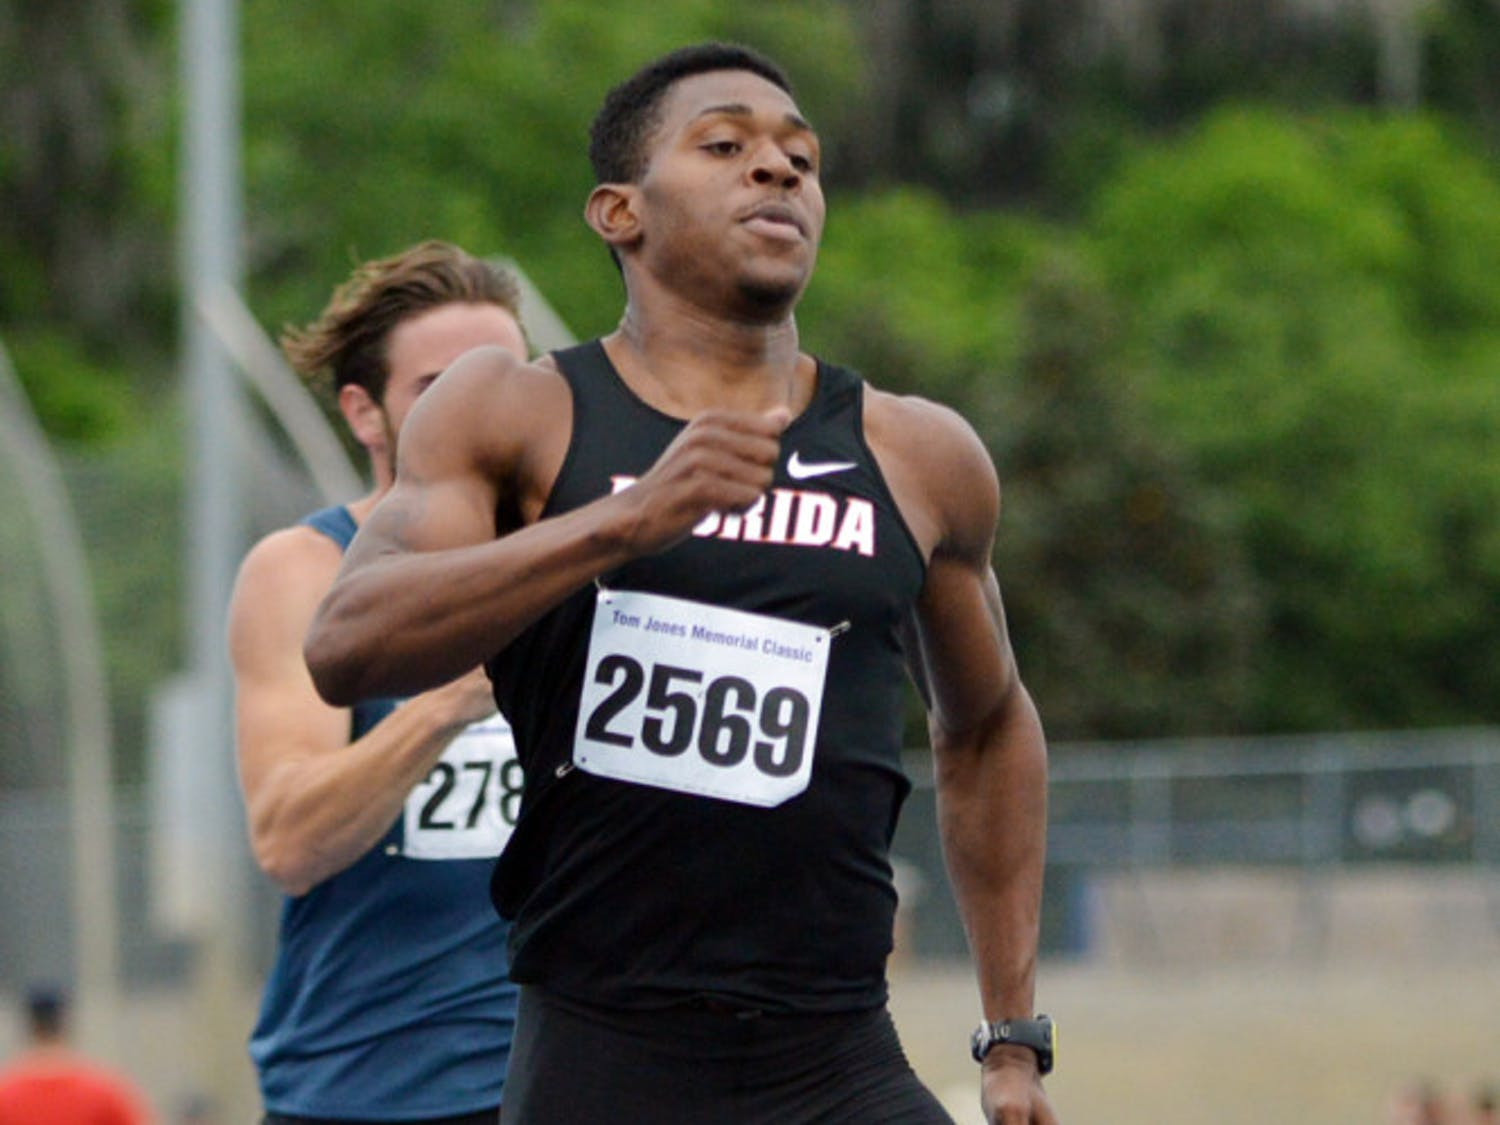 Dedric Dukes races in the 400-meter dash at the Tom Jones Memorial on April 19 at the Percy Beard Track. Dukes set personal-best marks in every event he competed in during the 2014 season and help break the school's 4x400-meter relay record.